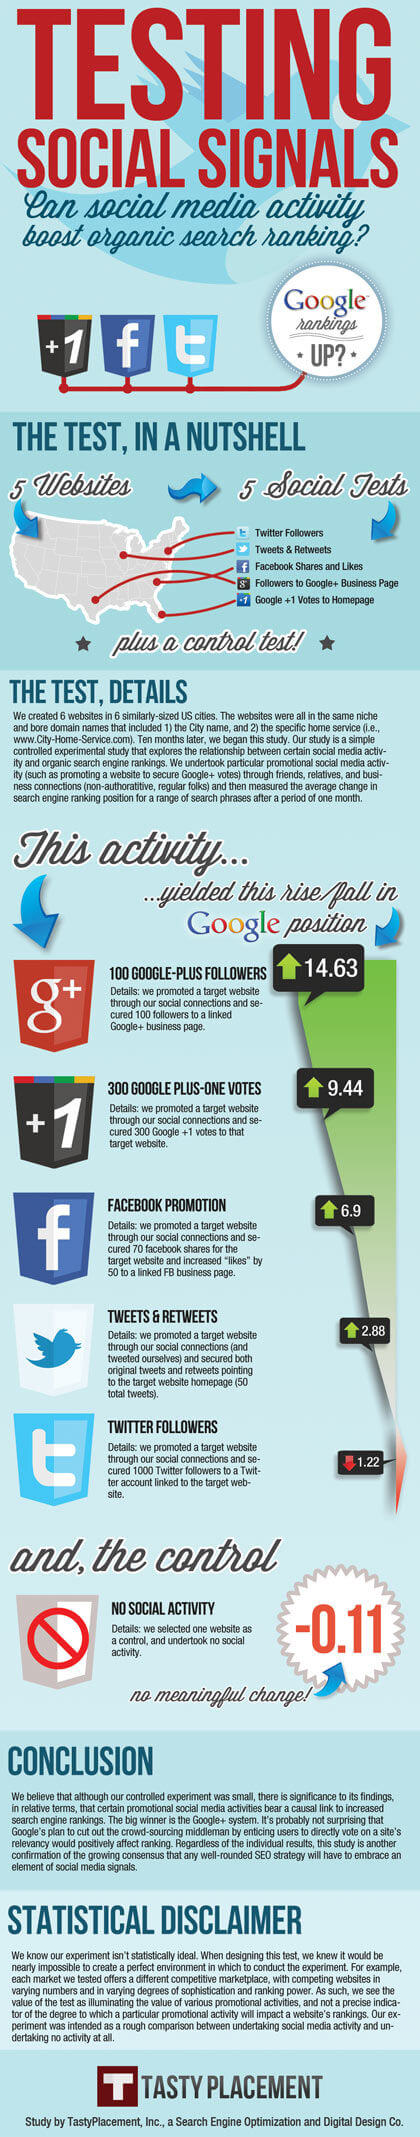 How important is Google+ to your future marketing?